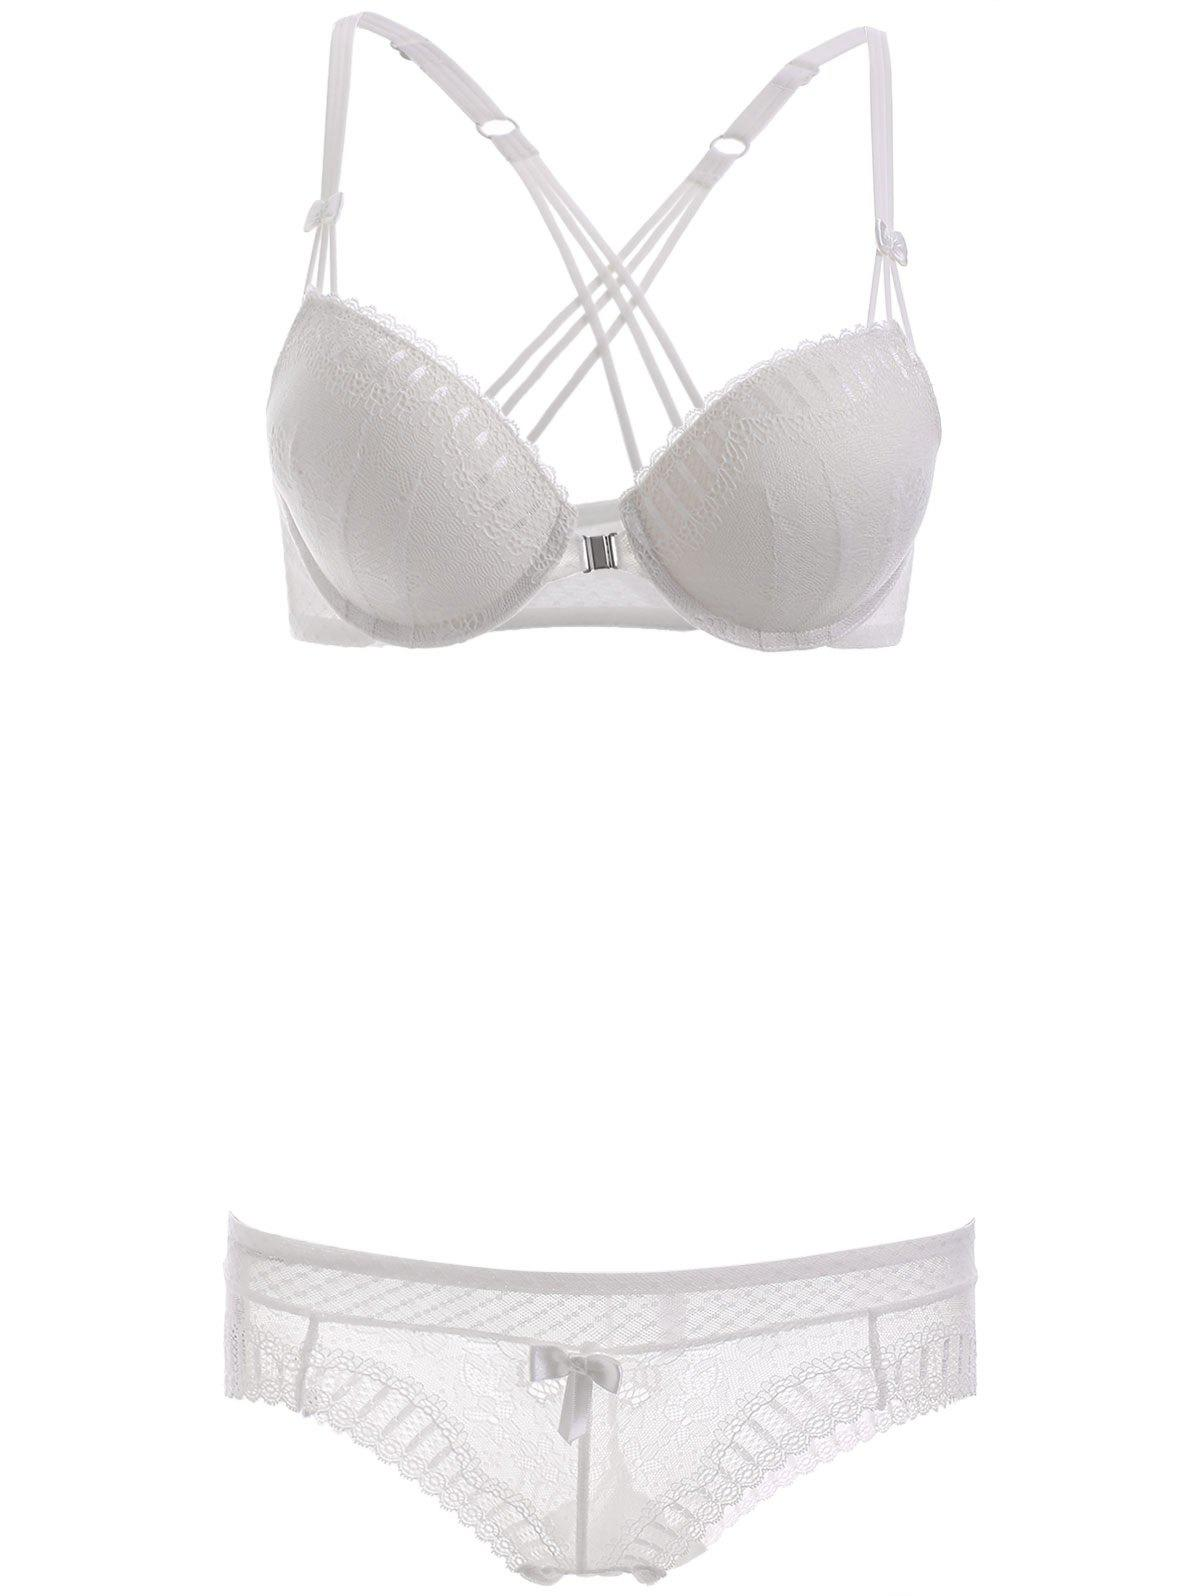 Elegant Women's Front Closure Criss-Cross Lace Bra Set - WHITE 75C